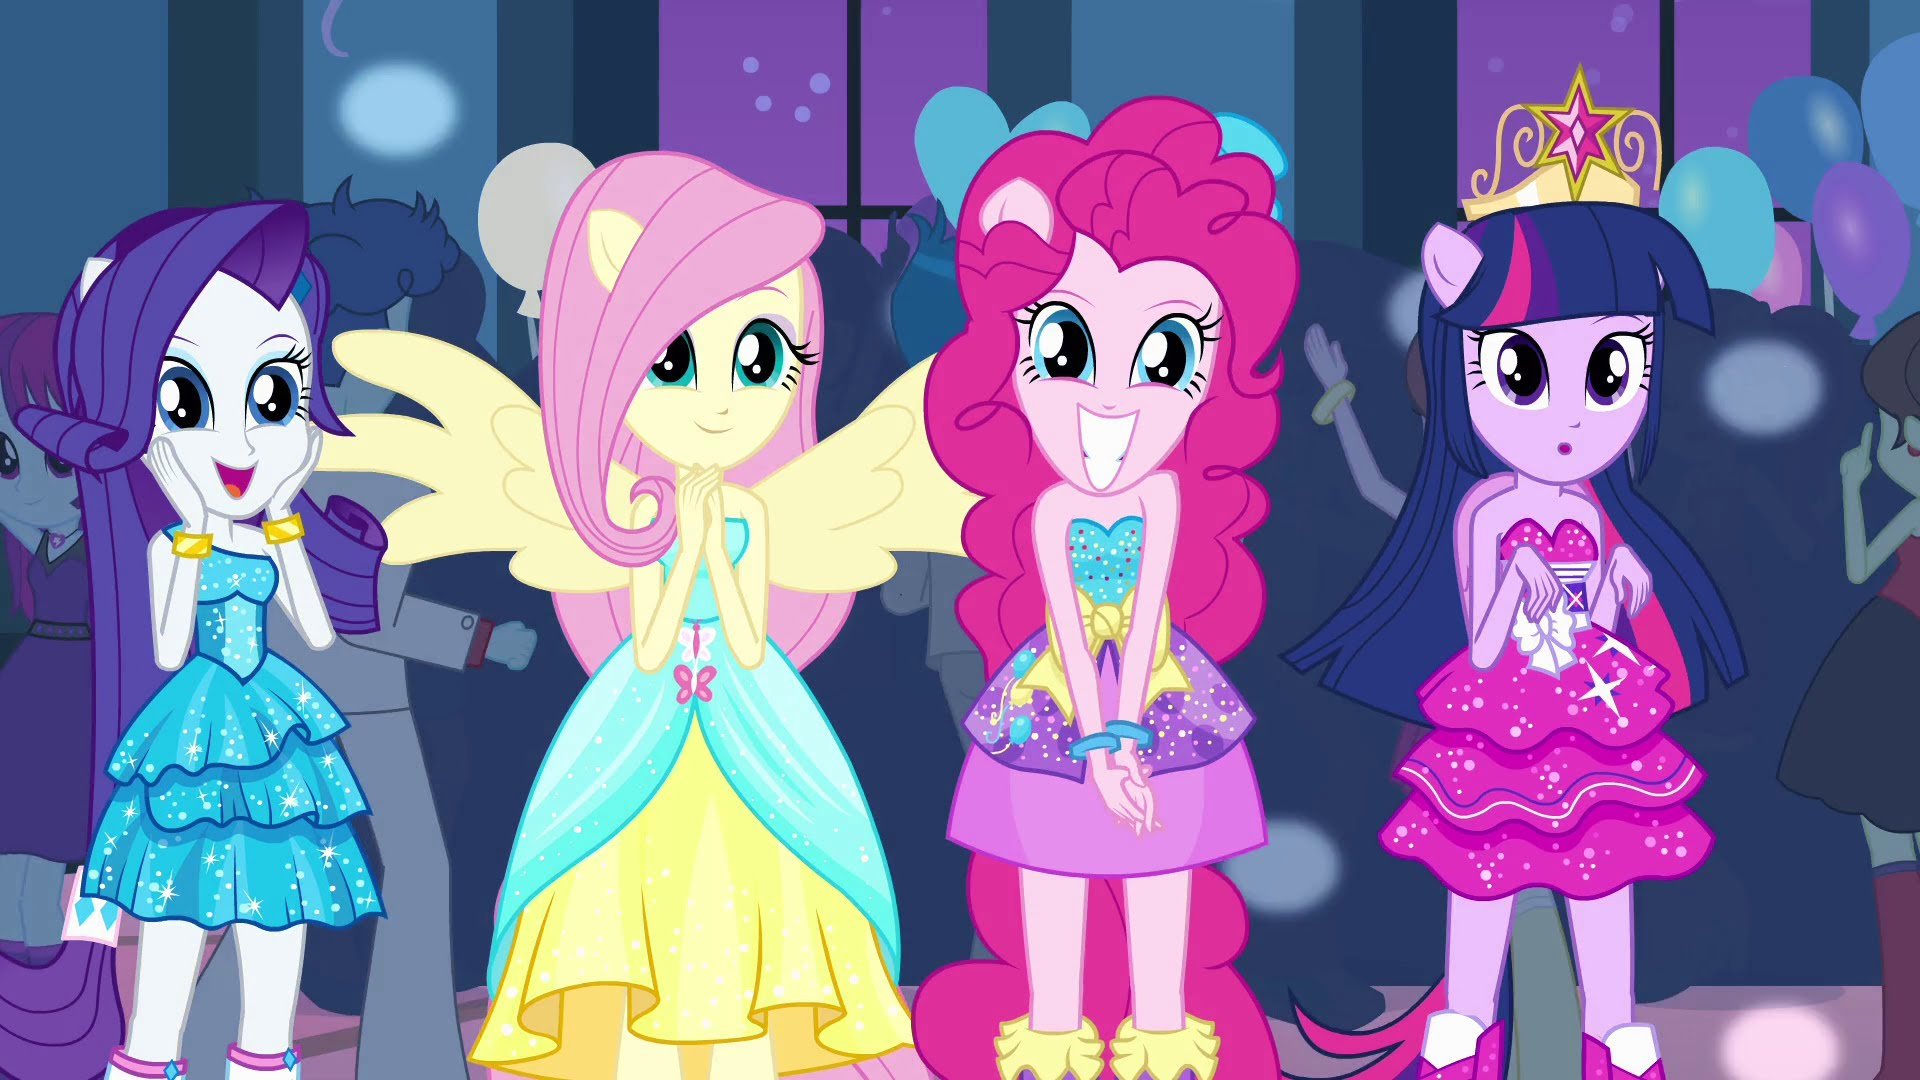 Fluttershy Wallpaper Fall Equestria Girls Of Mlp Images Picture Time Hd Wallpaper